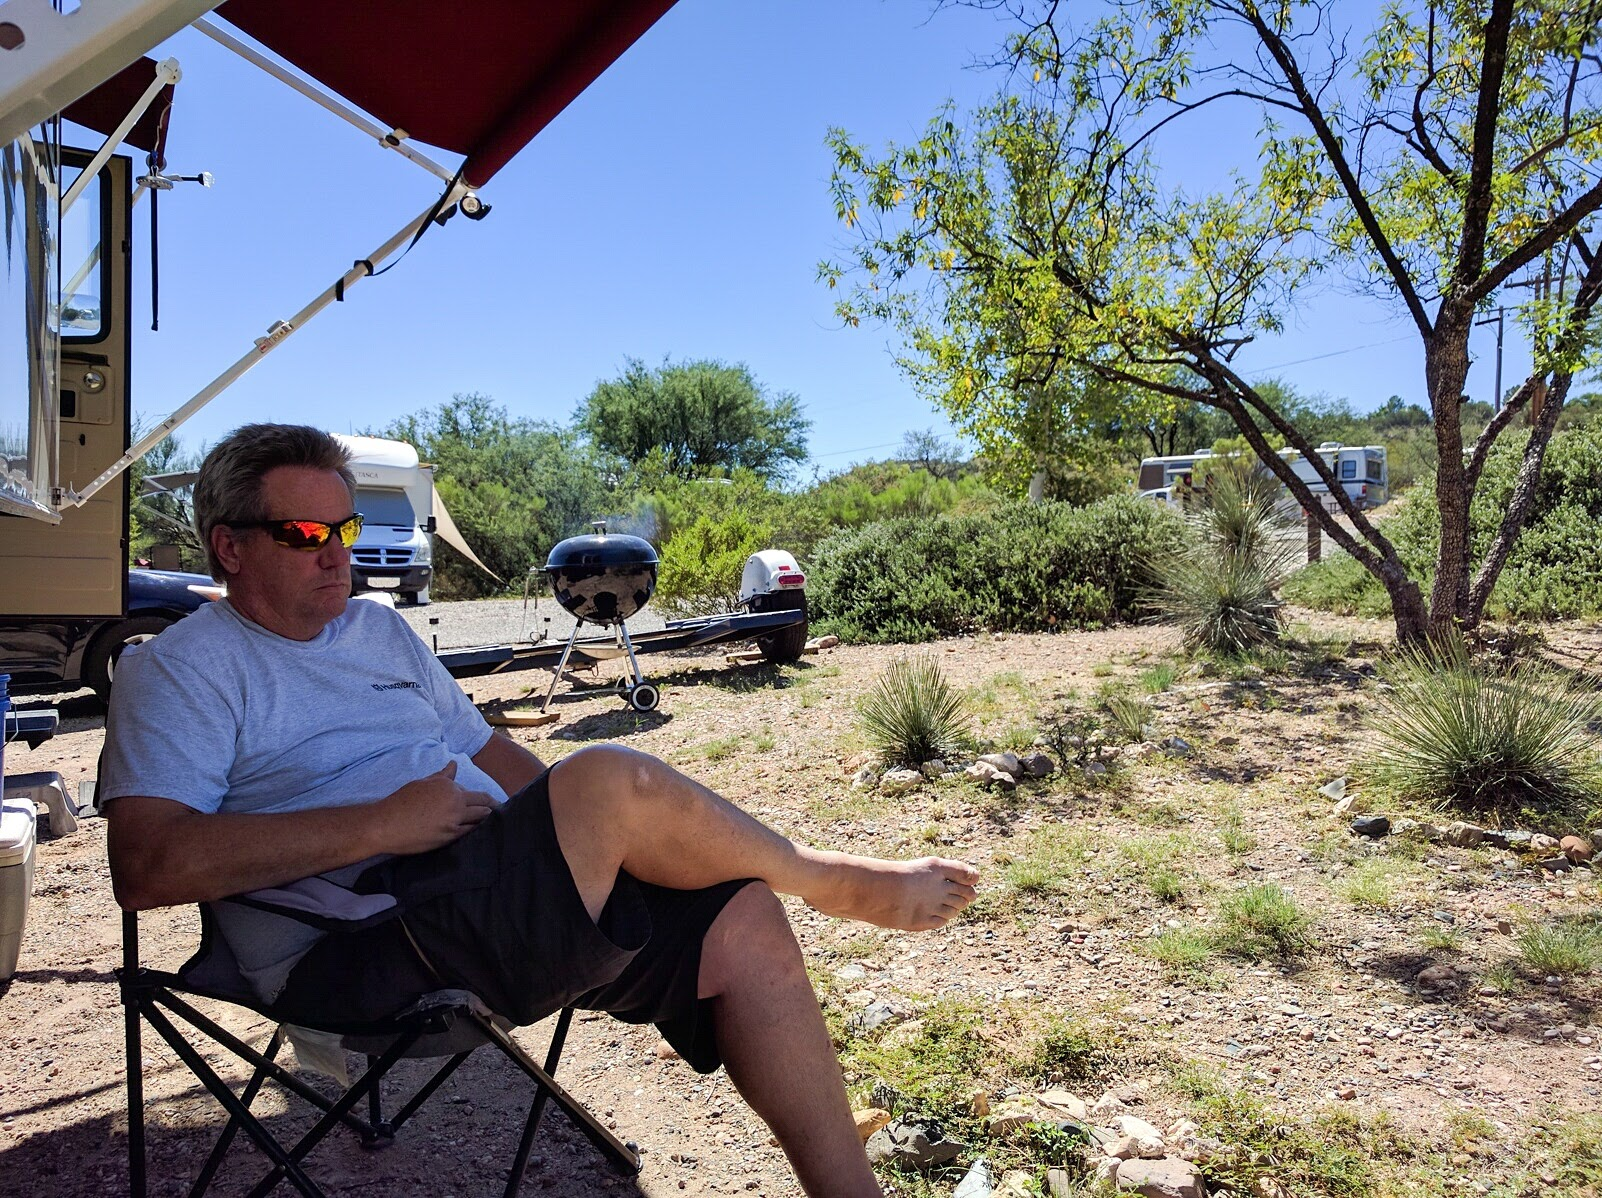 Relaxing the shade at Thousand Trails Verde Valley.